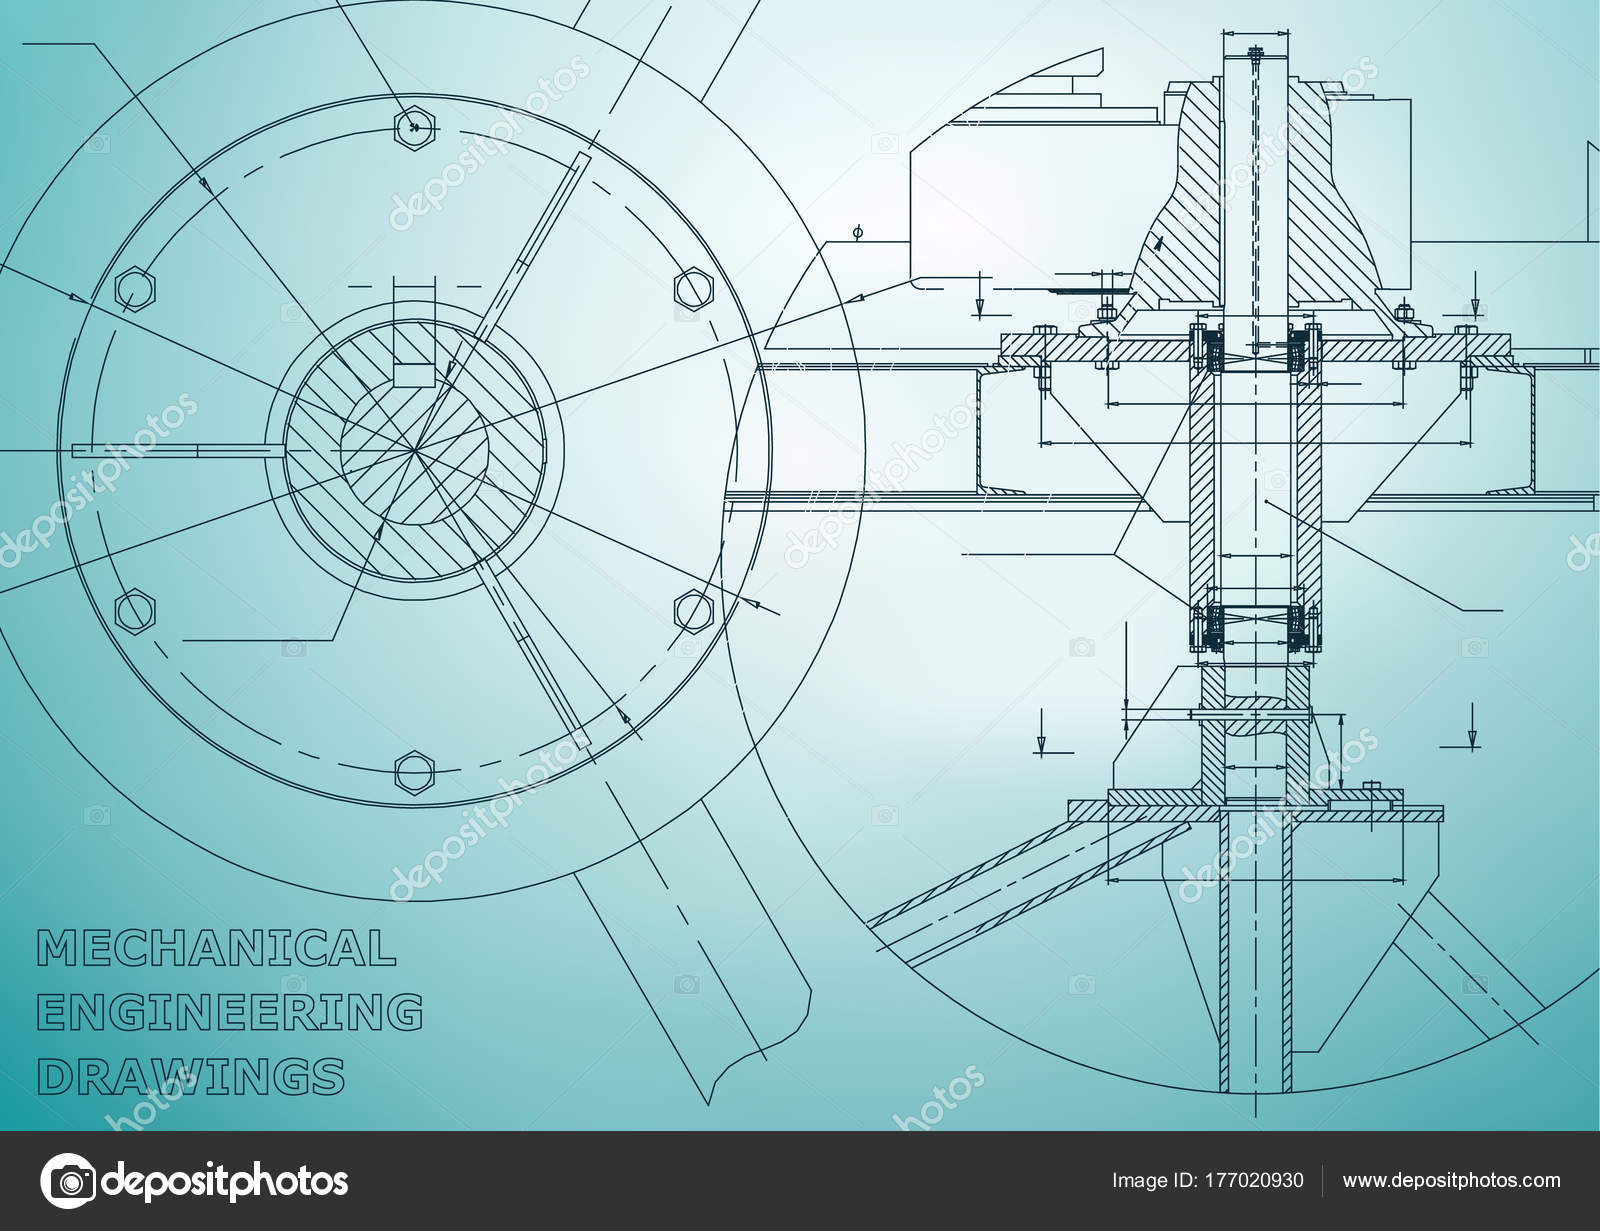 Mechanical Engineering Drawing at GetDrawings.com | Free for ...